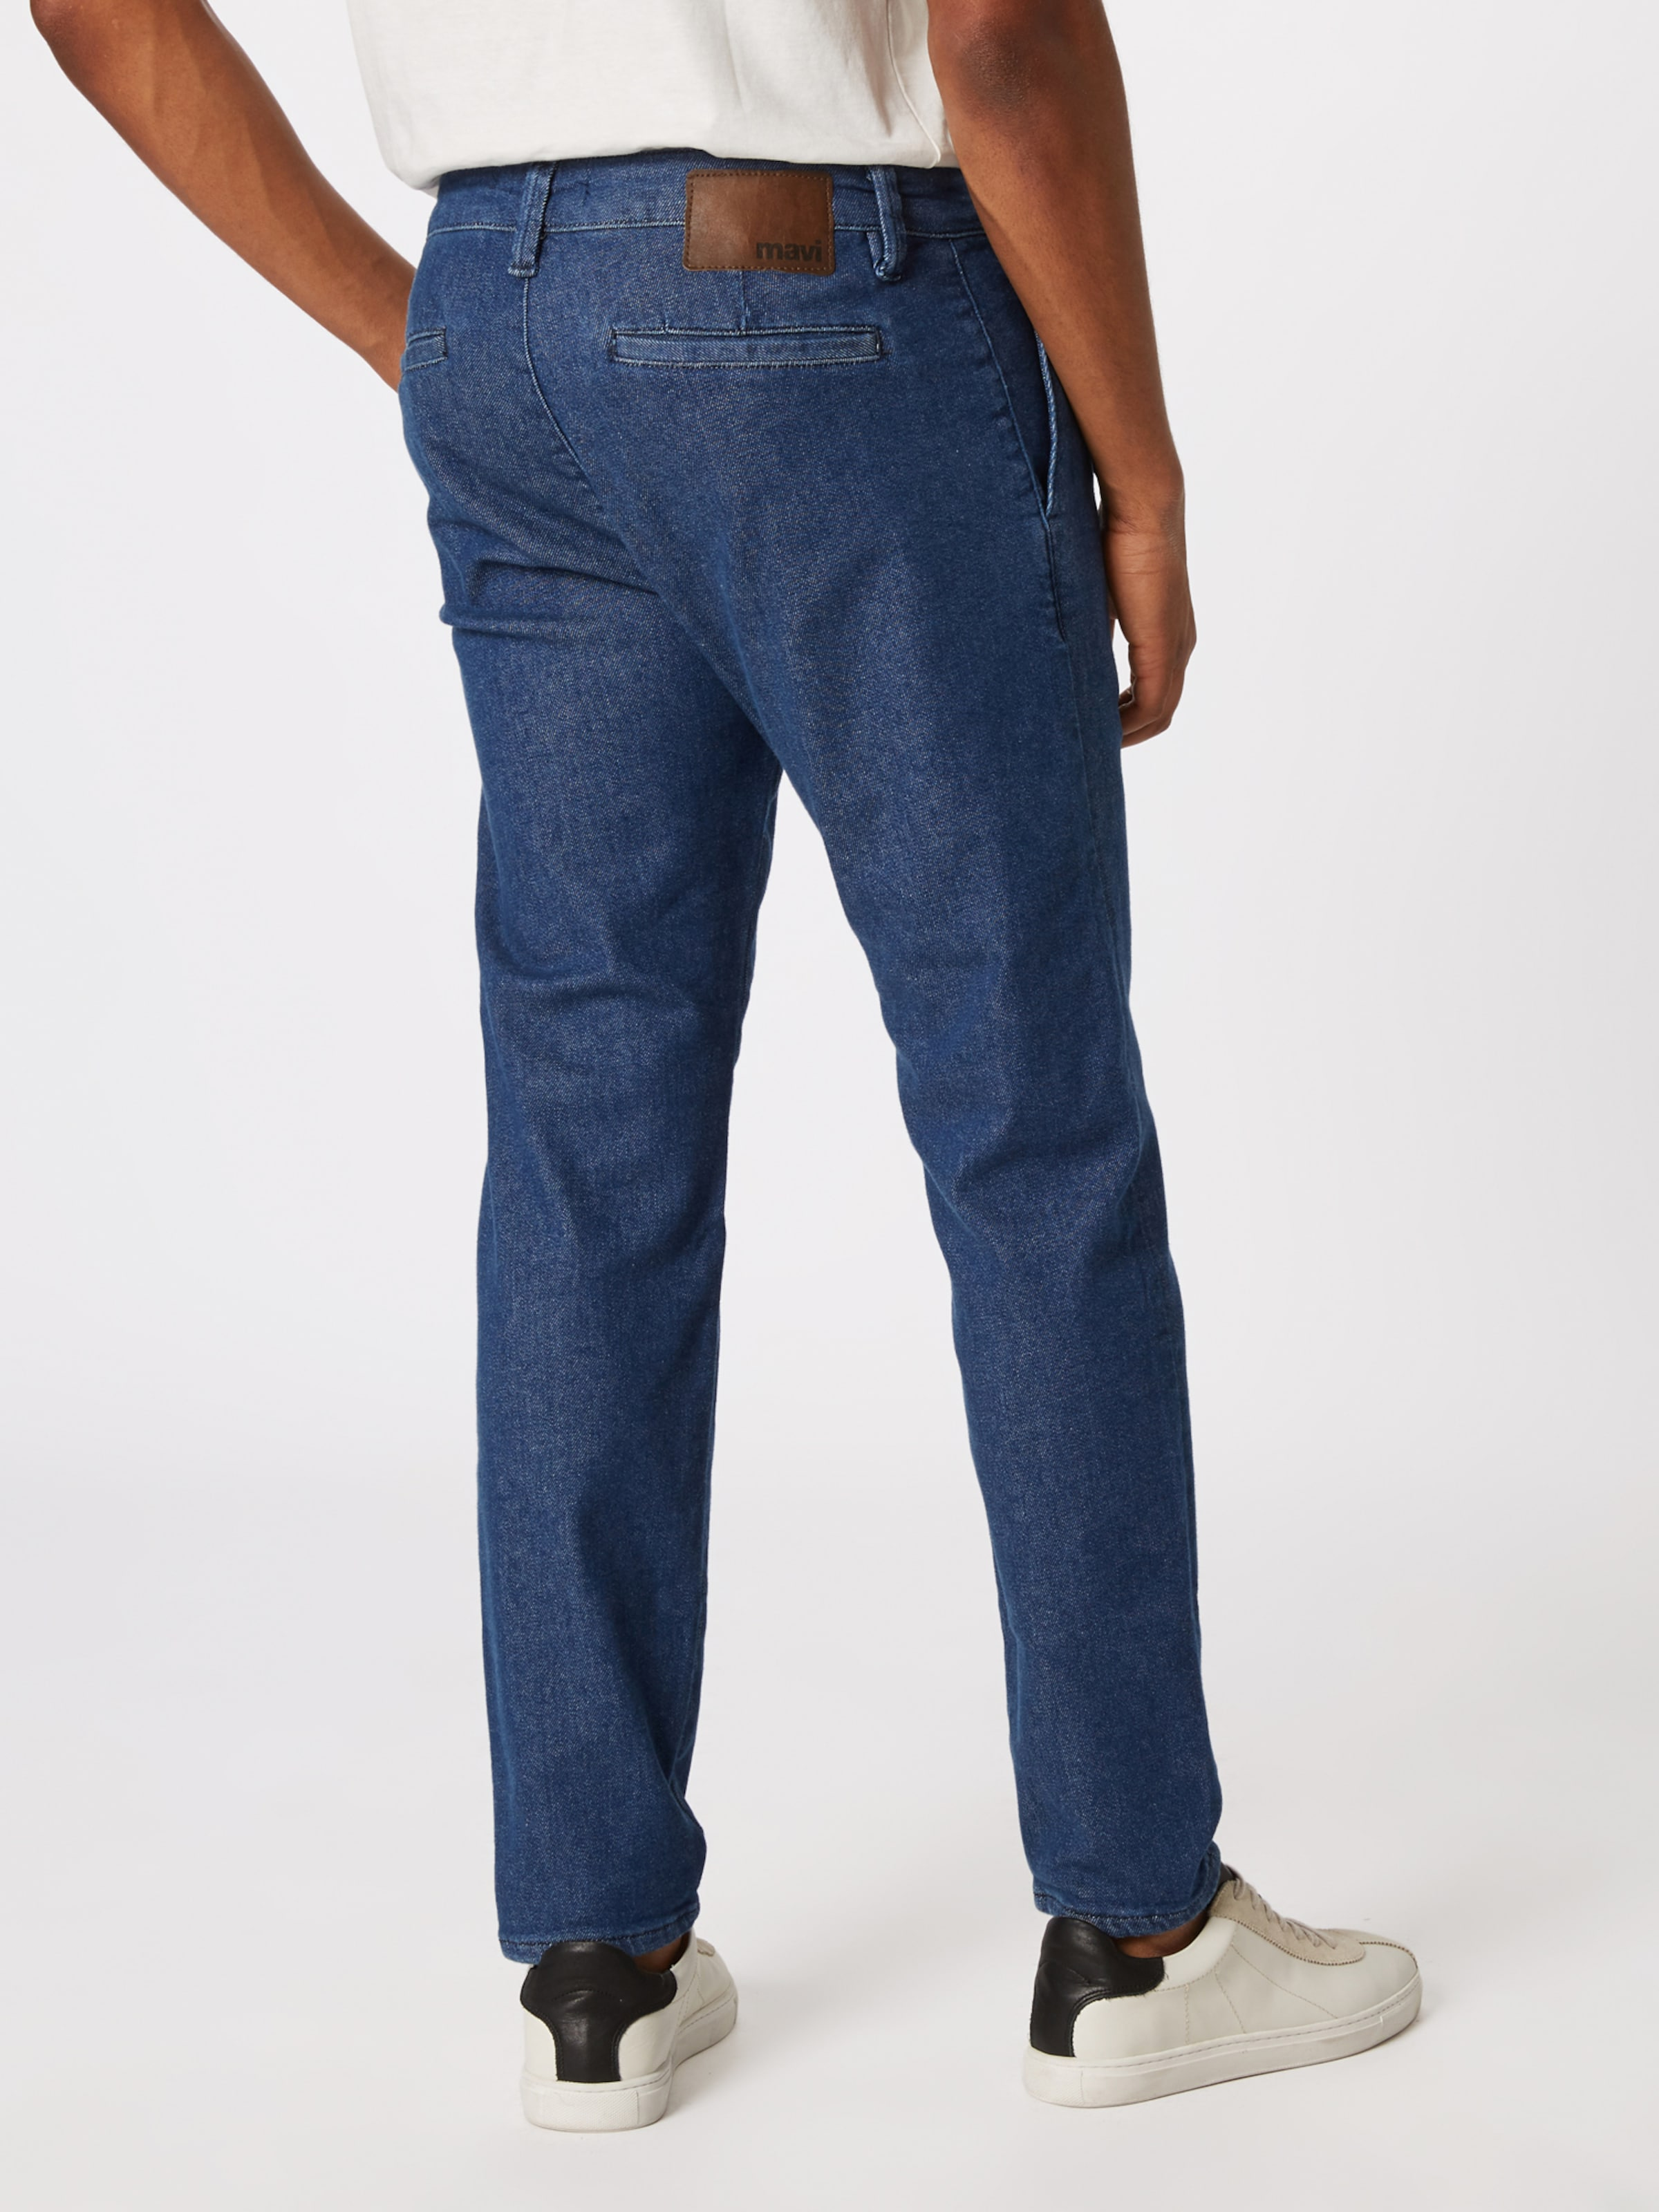 Jeans Blue Mavi Denim 'dylan Trouser' In QCWrEdexBo